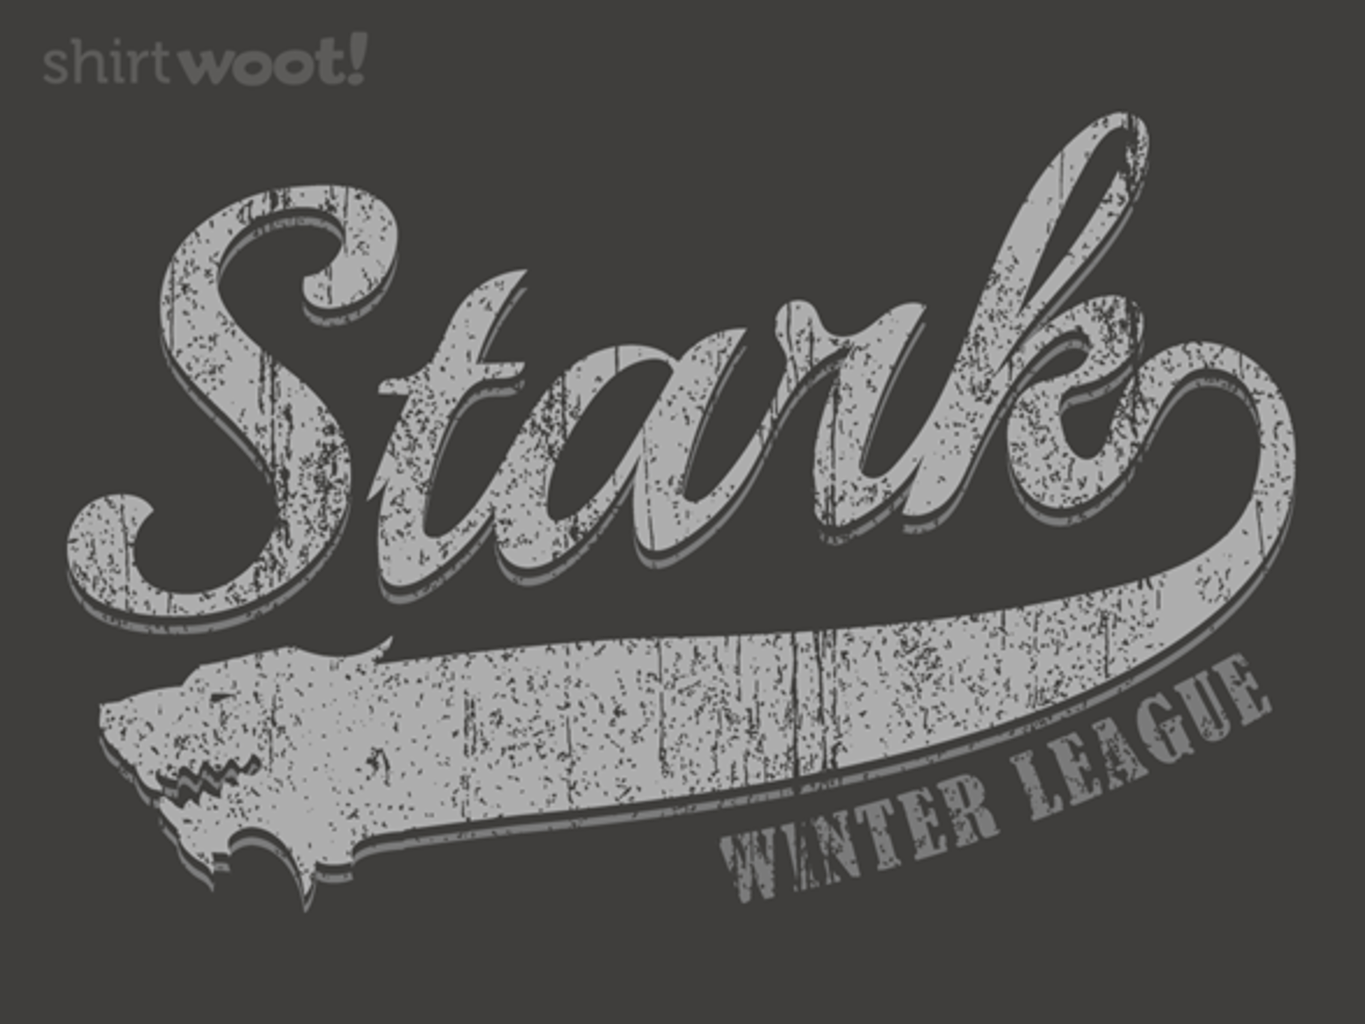 Woot!: Winter League